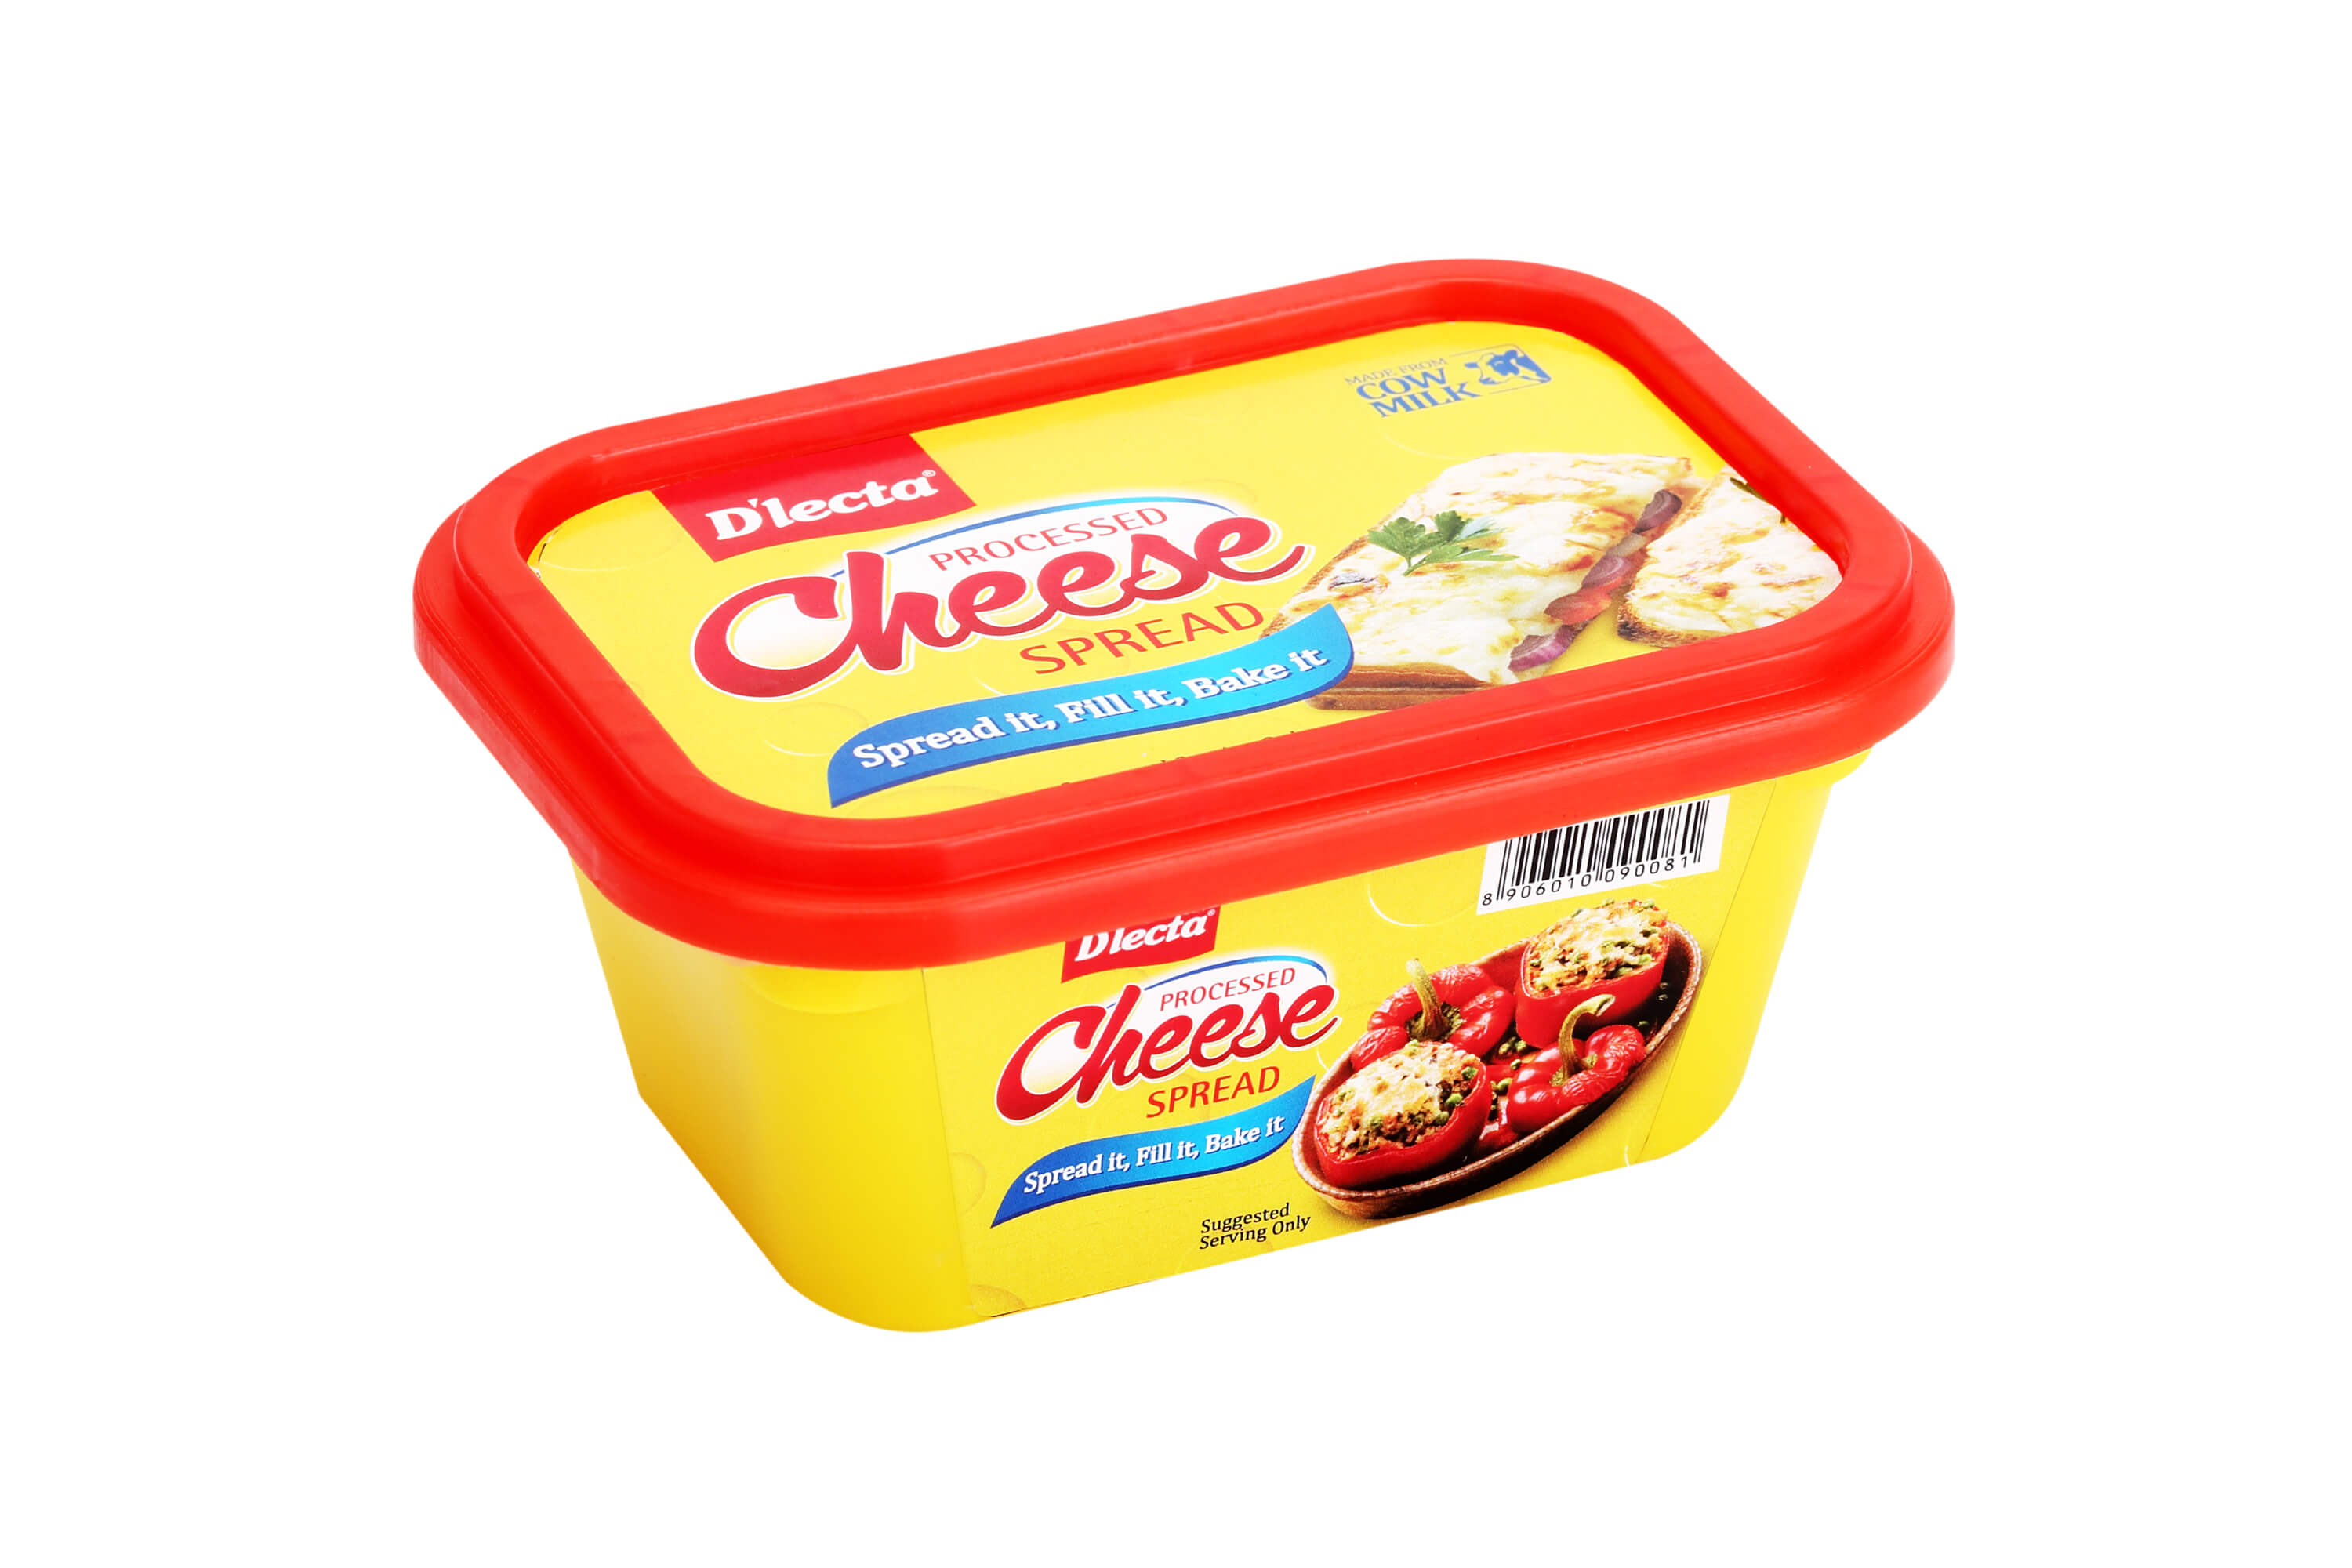 D'Lecta Cheese Spread Image